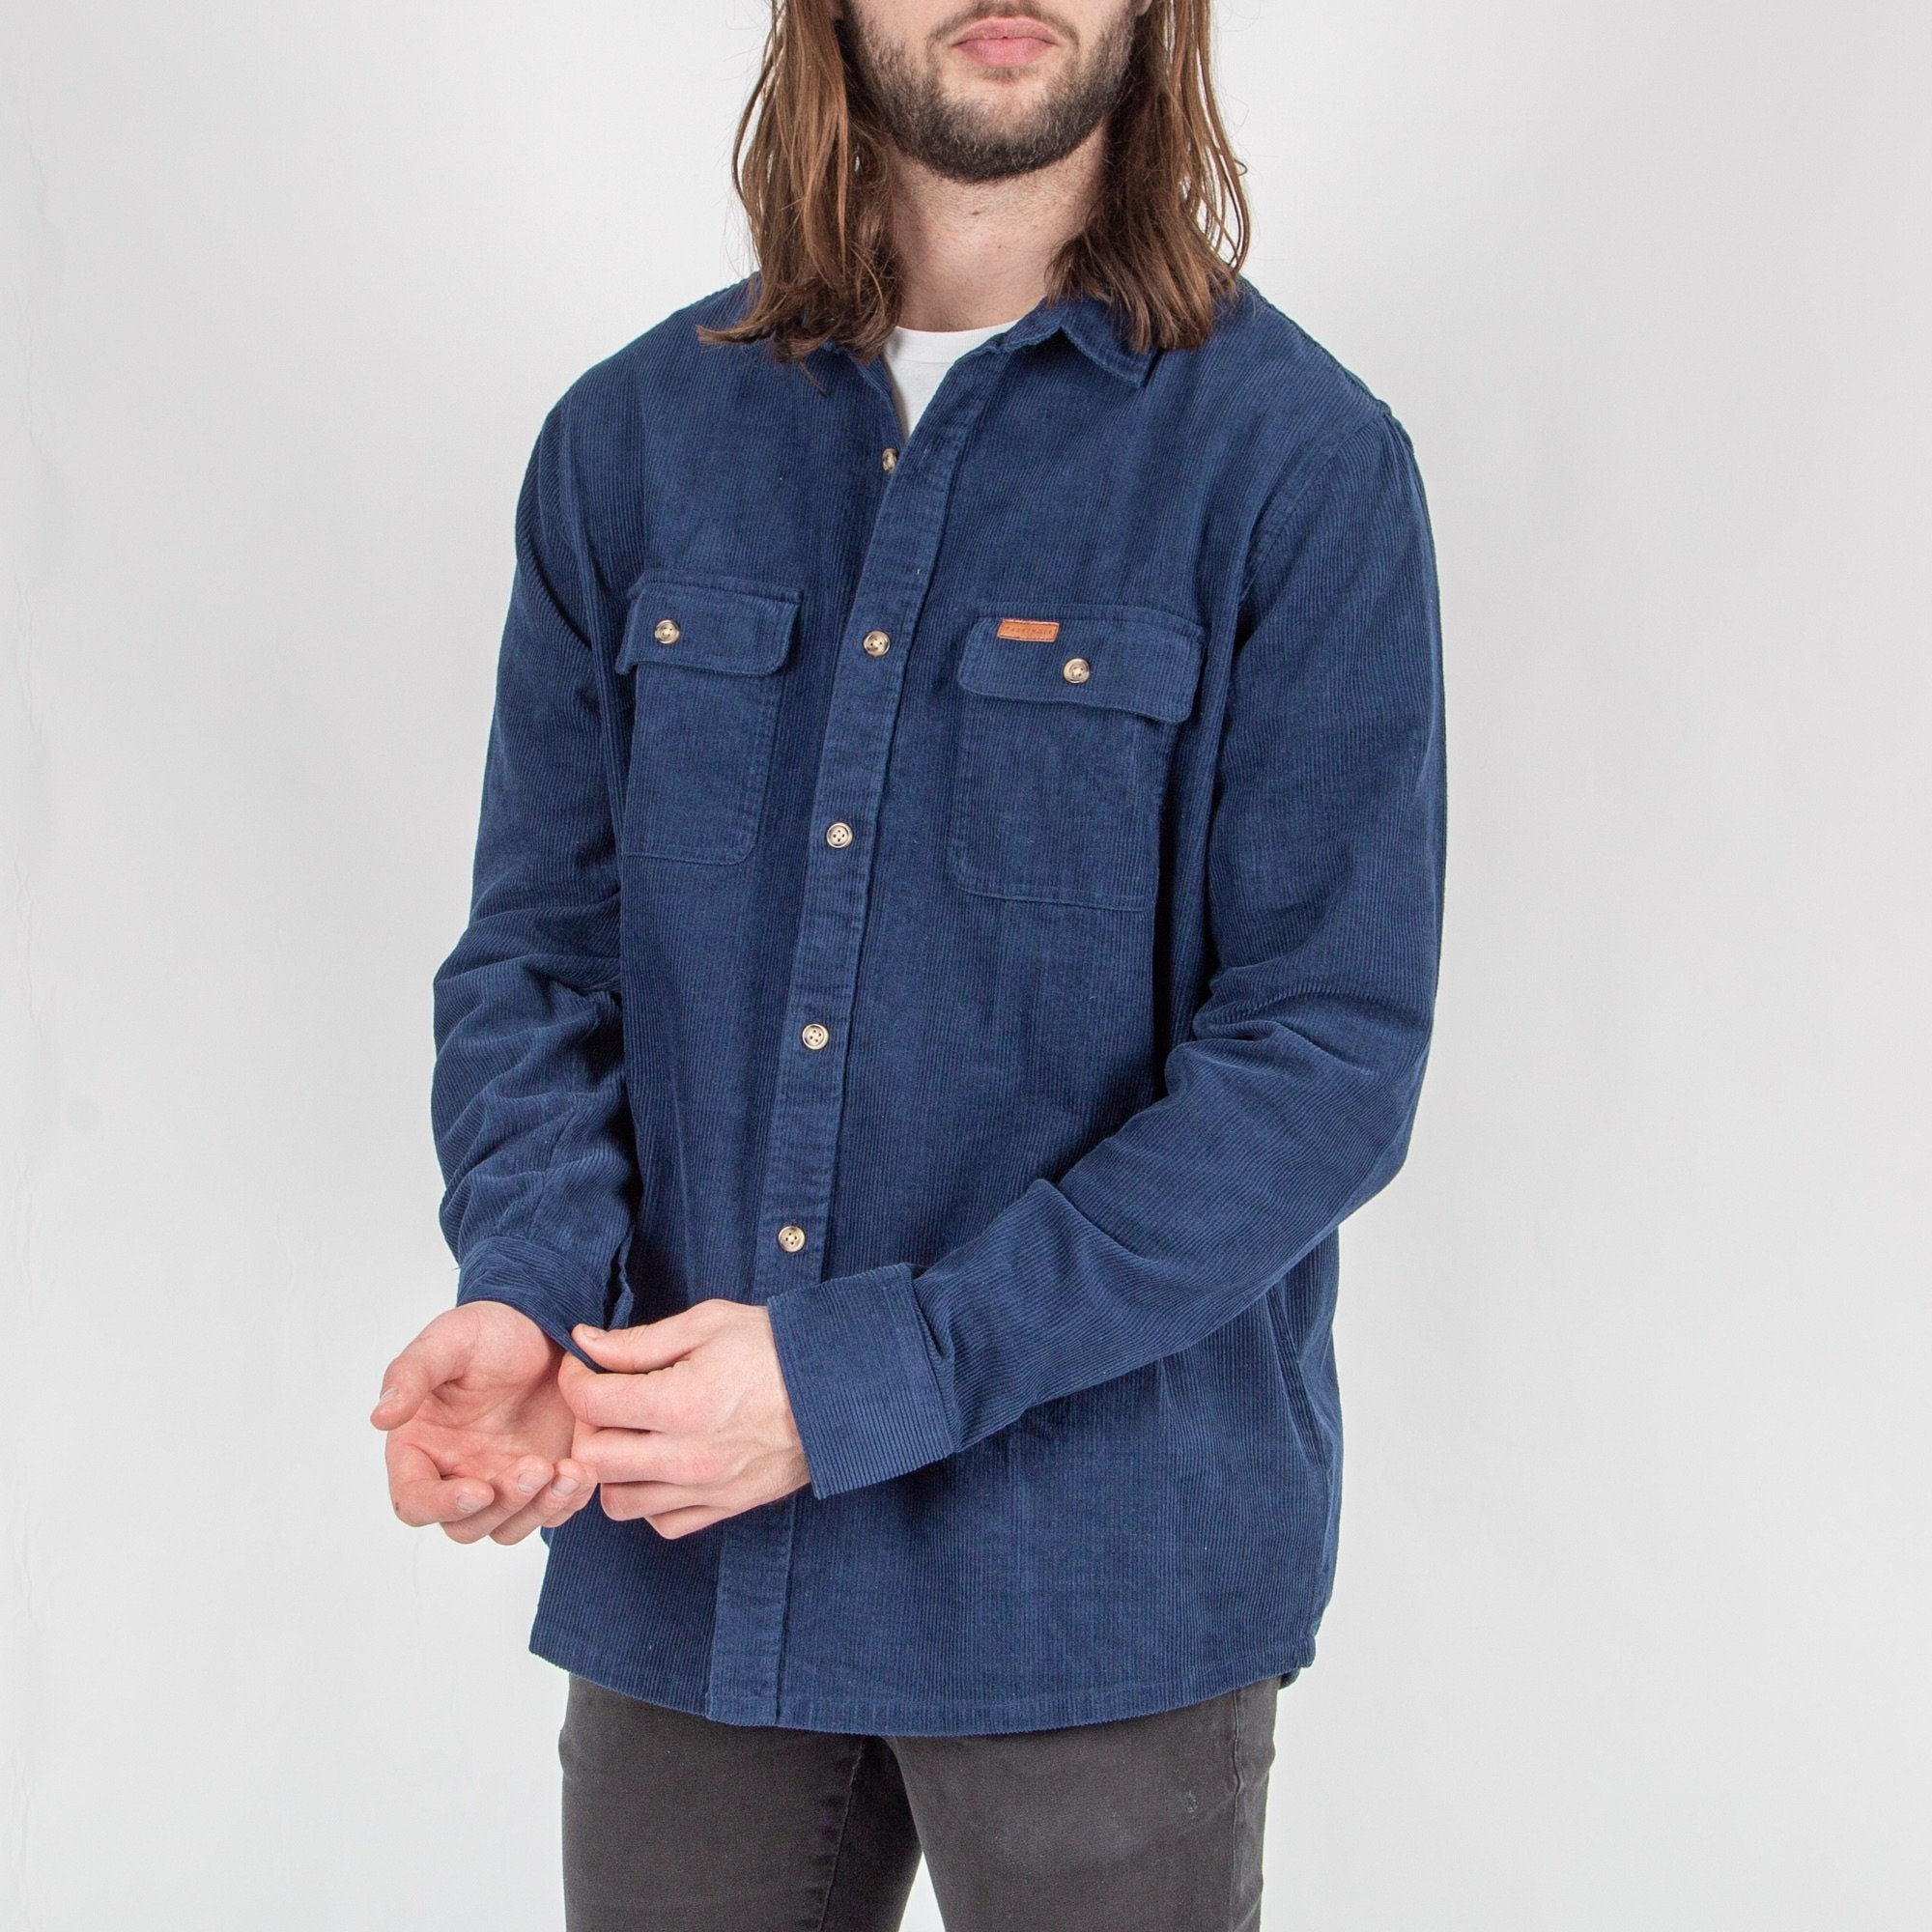 Backcountry Cord Shirt - Dark Denim image 3